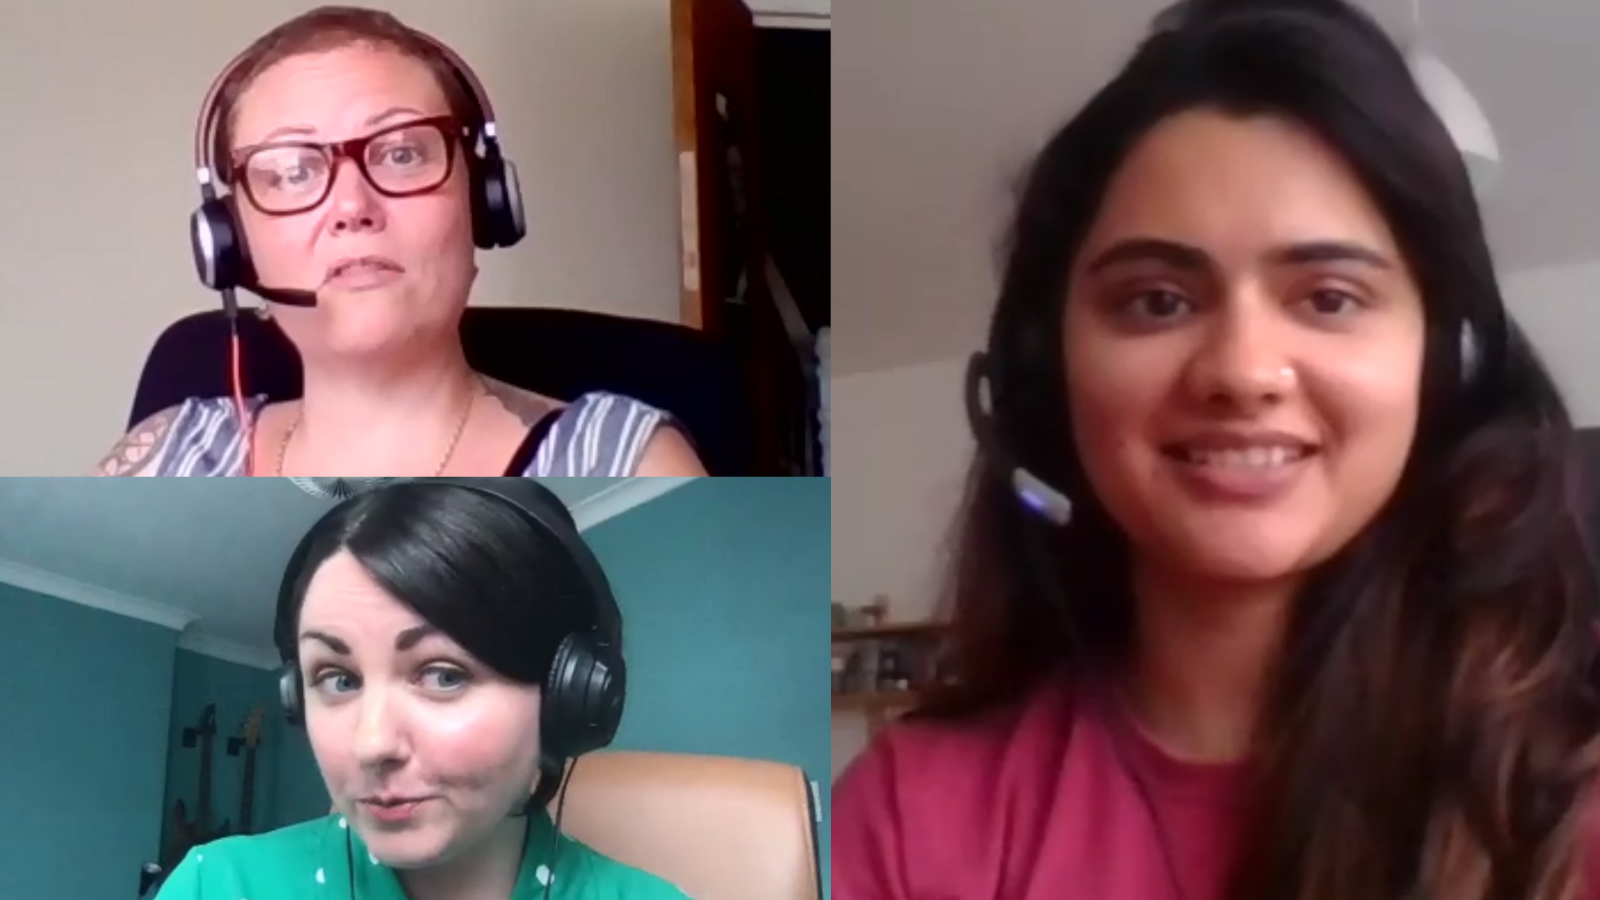 Podcast recording selfies from Claire Parry-Witchell, Kayleigh Mcleod & Prateeksha Pathak